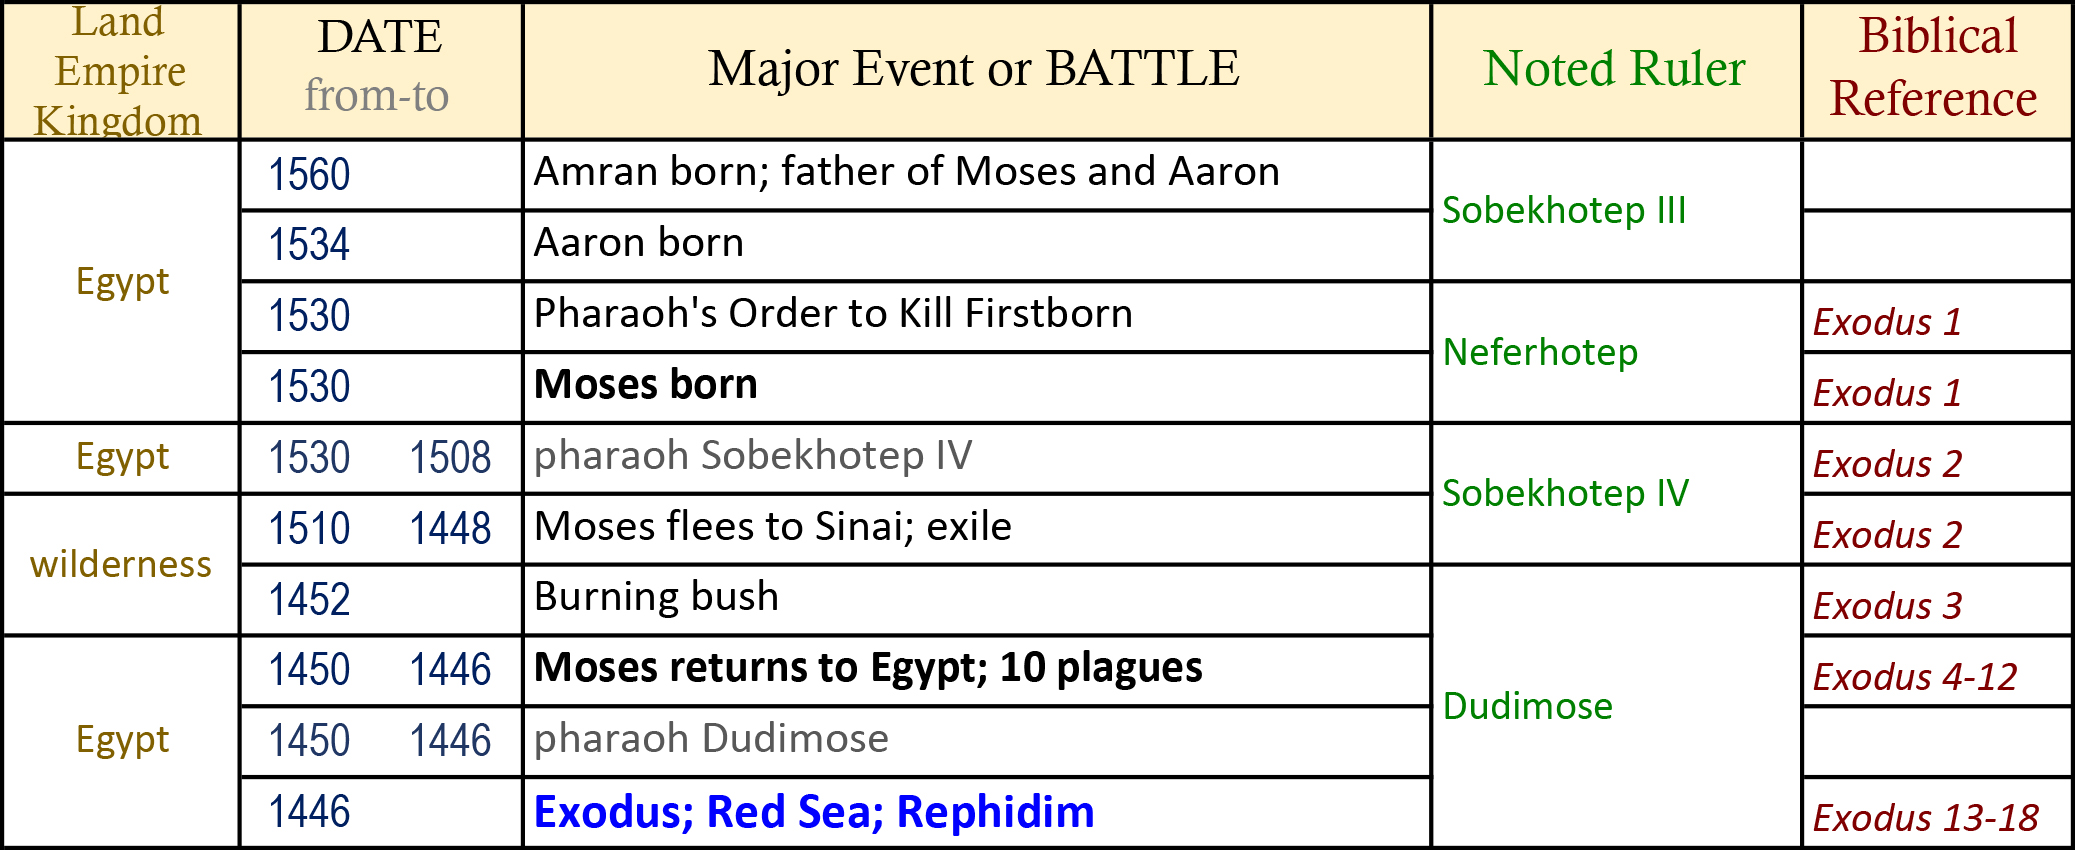 Ancient history egypt first superpower pharaohs moses runs away bible timeline world history timeline ancient history bible history religious wars altavistaventures Images